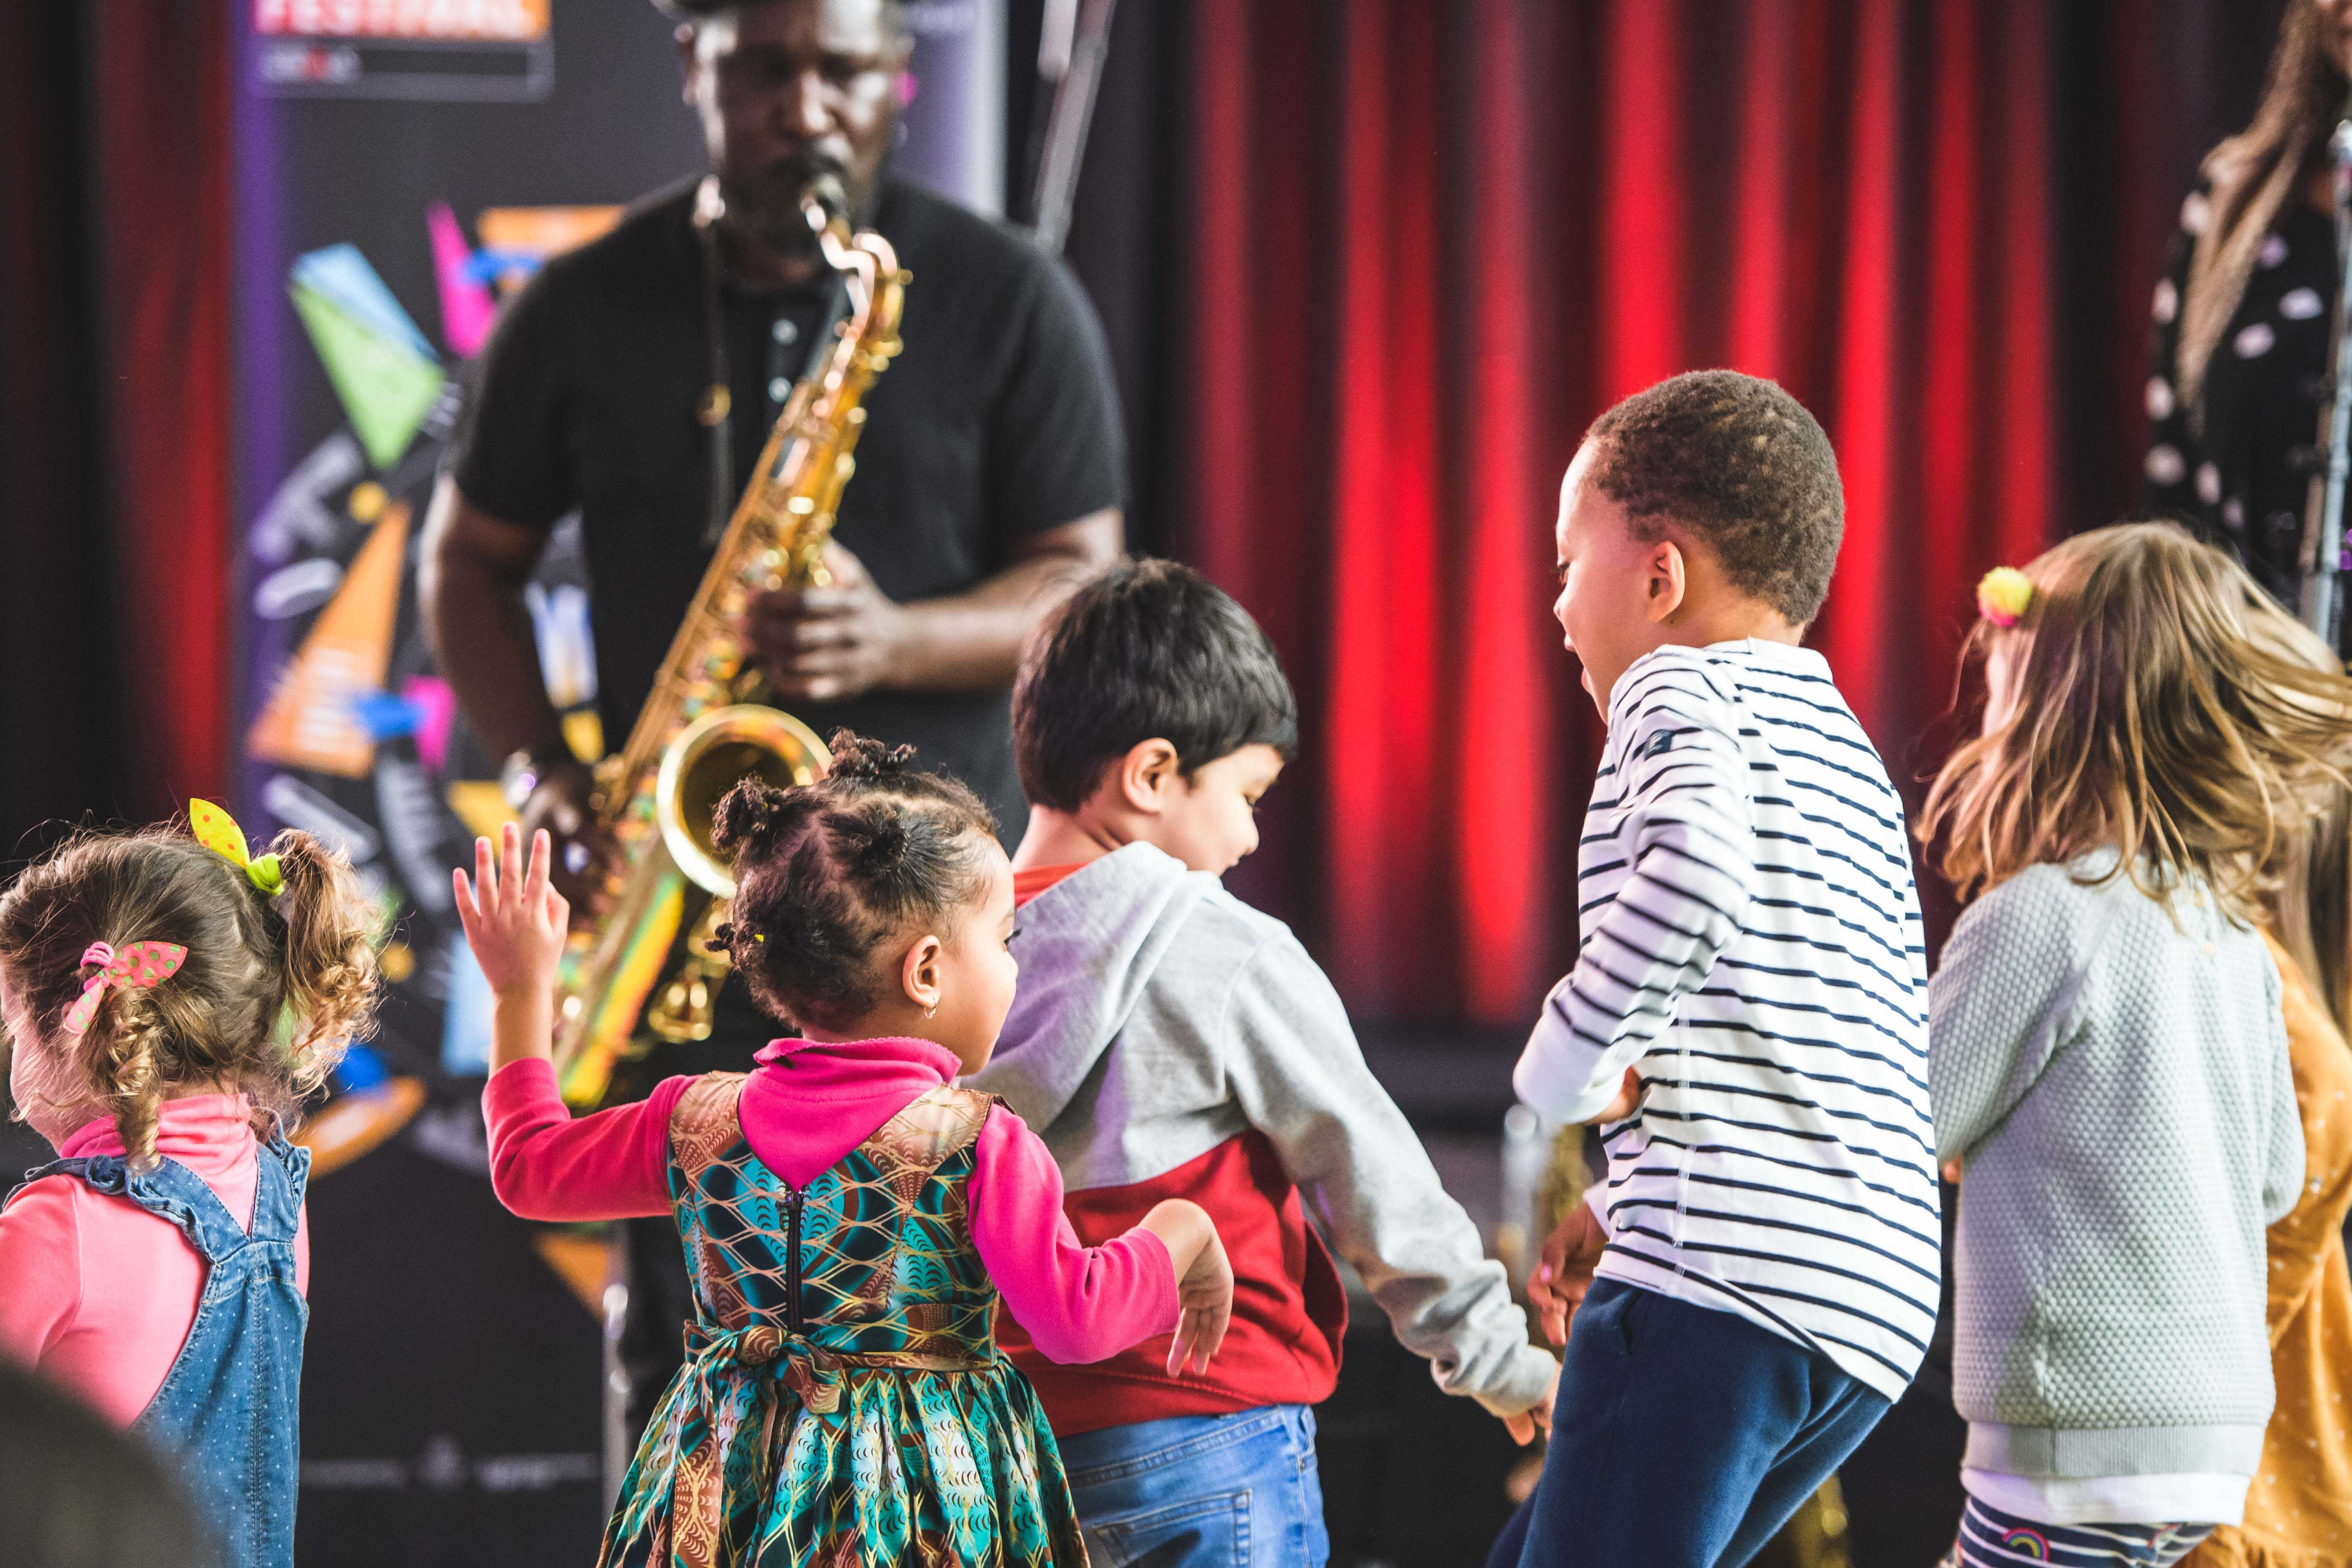 Jazz for toddlers at the EFG Jazz Festival